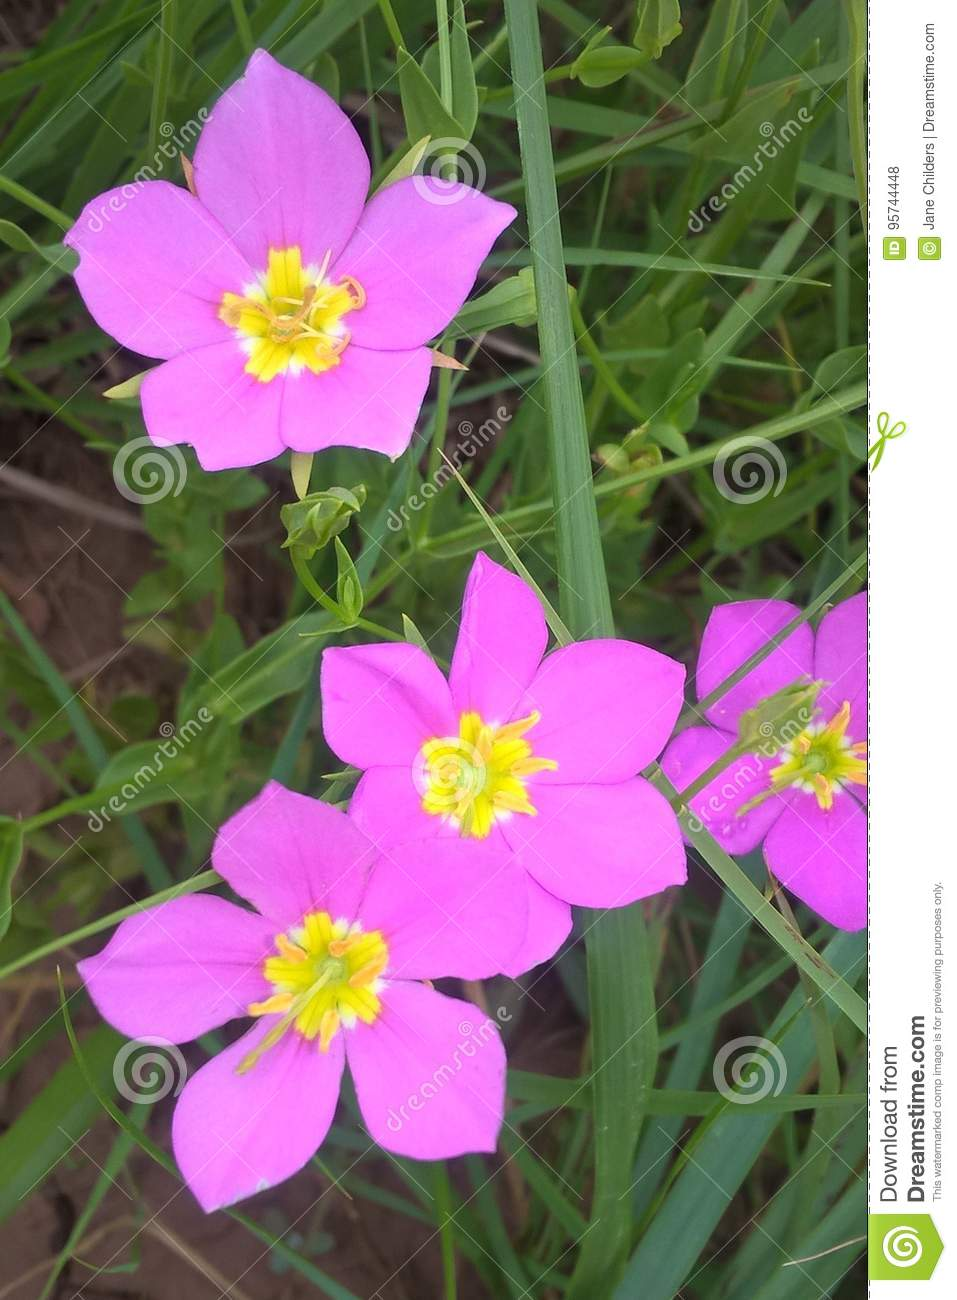 Texas Star Flower Stock Photo Image Of Gardening Landscapes 95744448